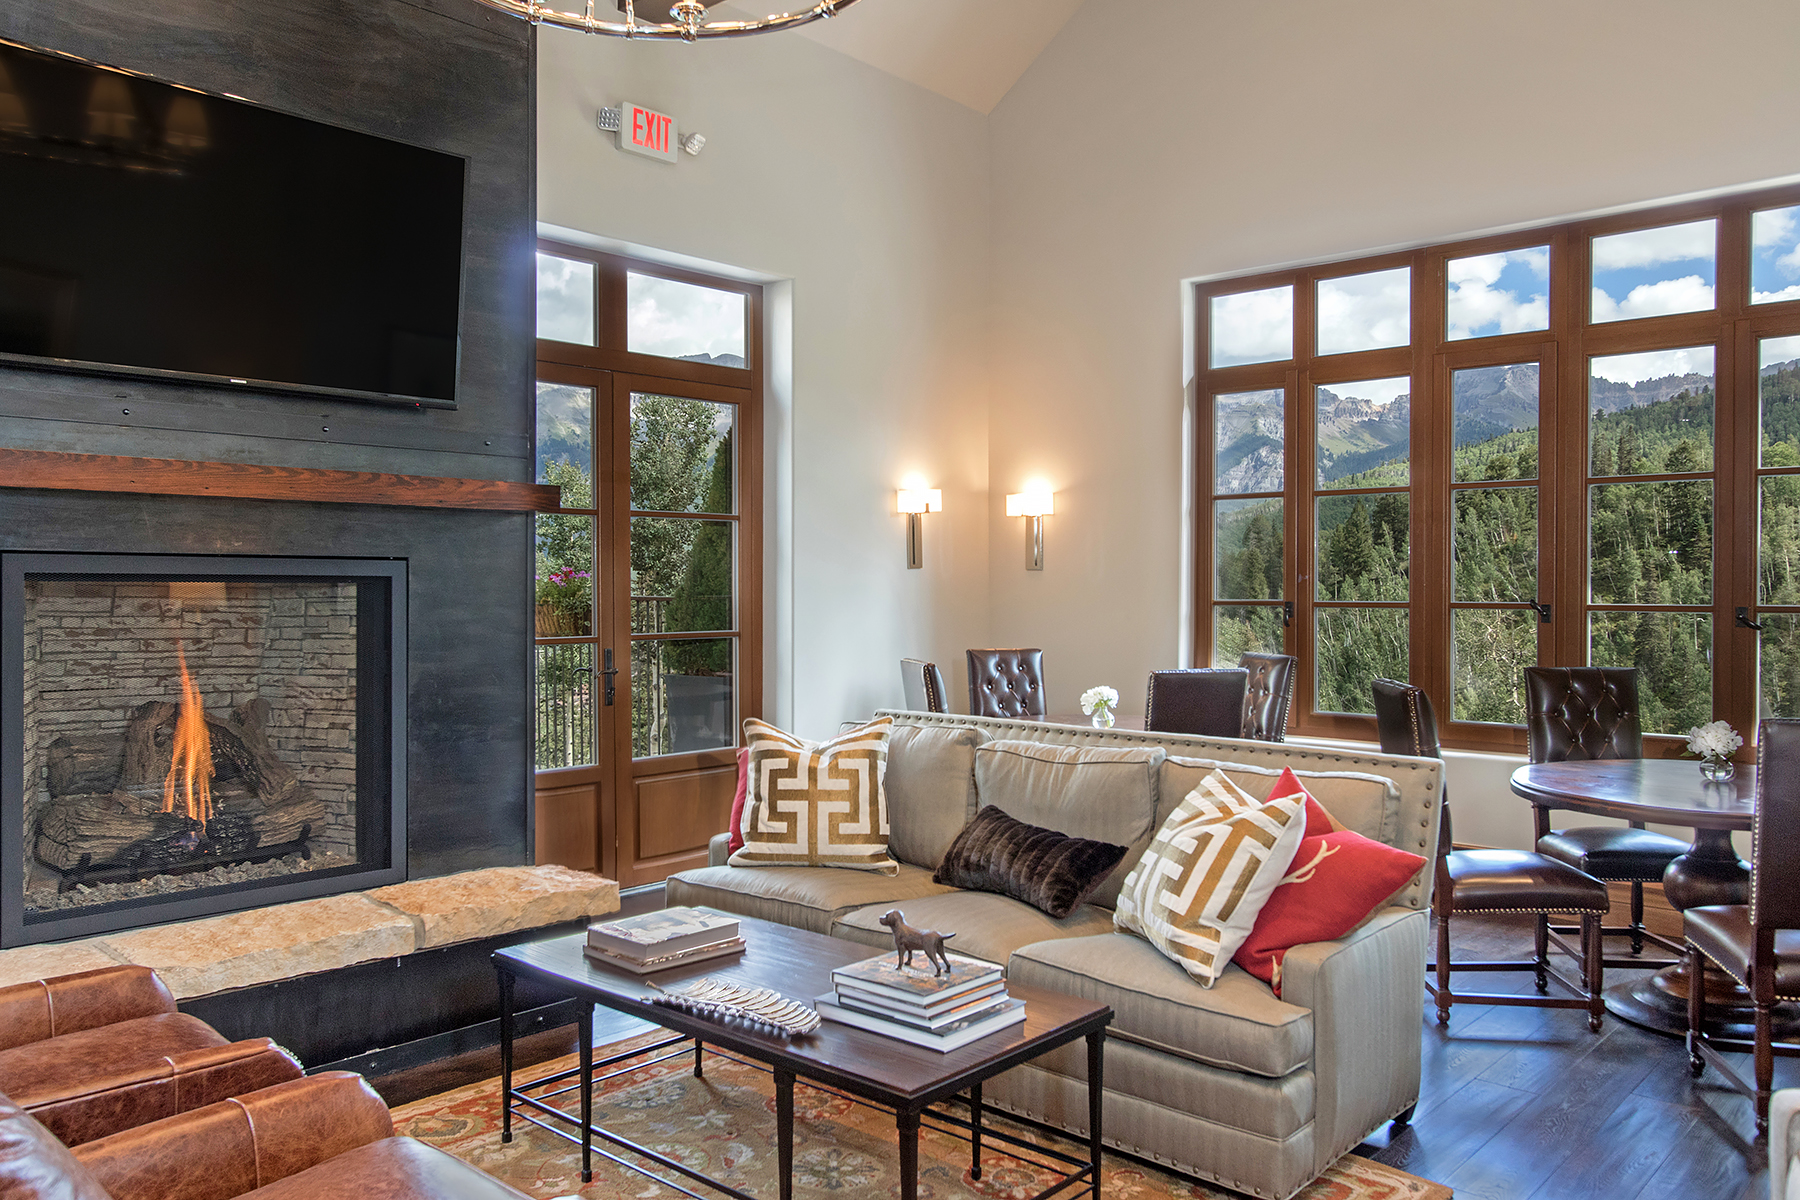 Single Family Home for Sale at Villas At Cortina 125 Cortina Drive Unit 11 Telluride, Colorado, 81435 United States